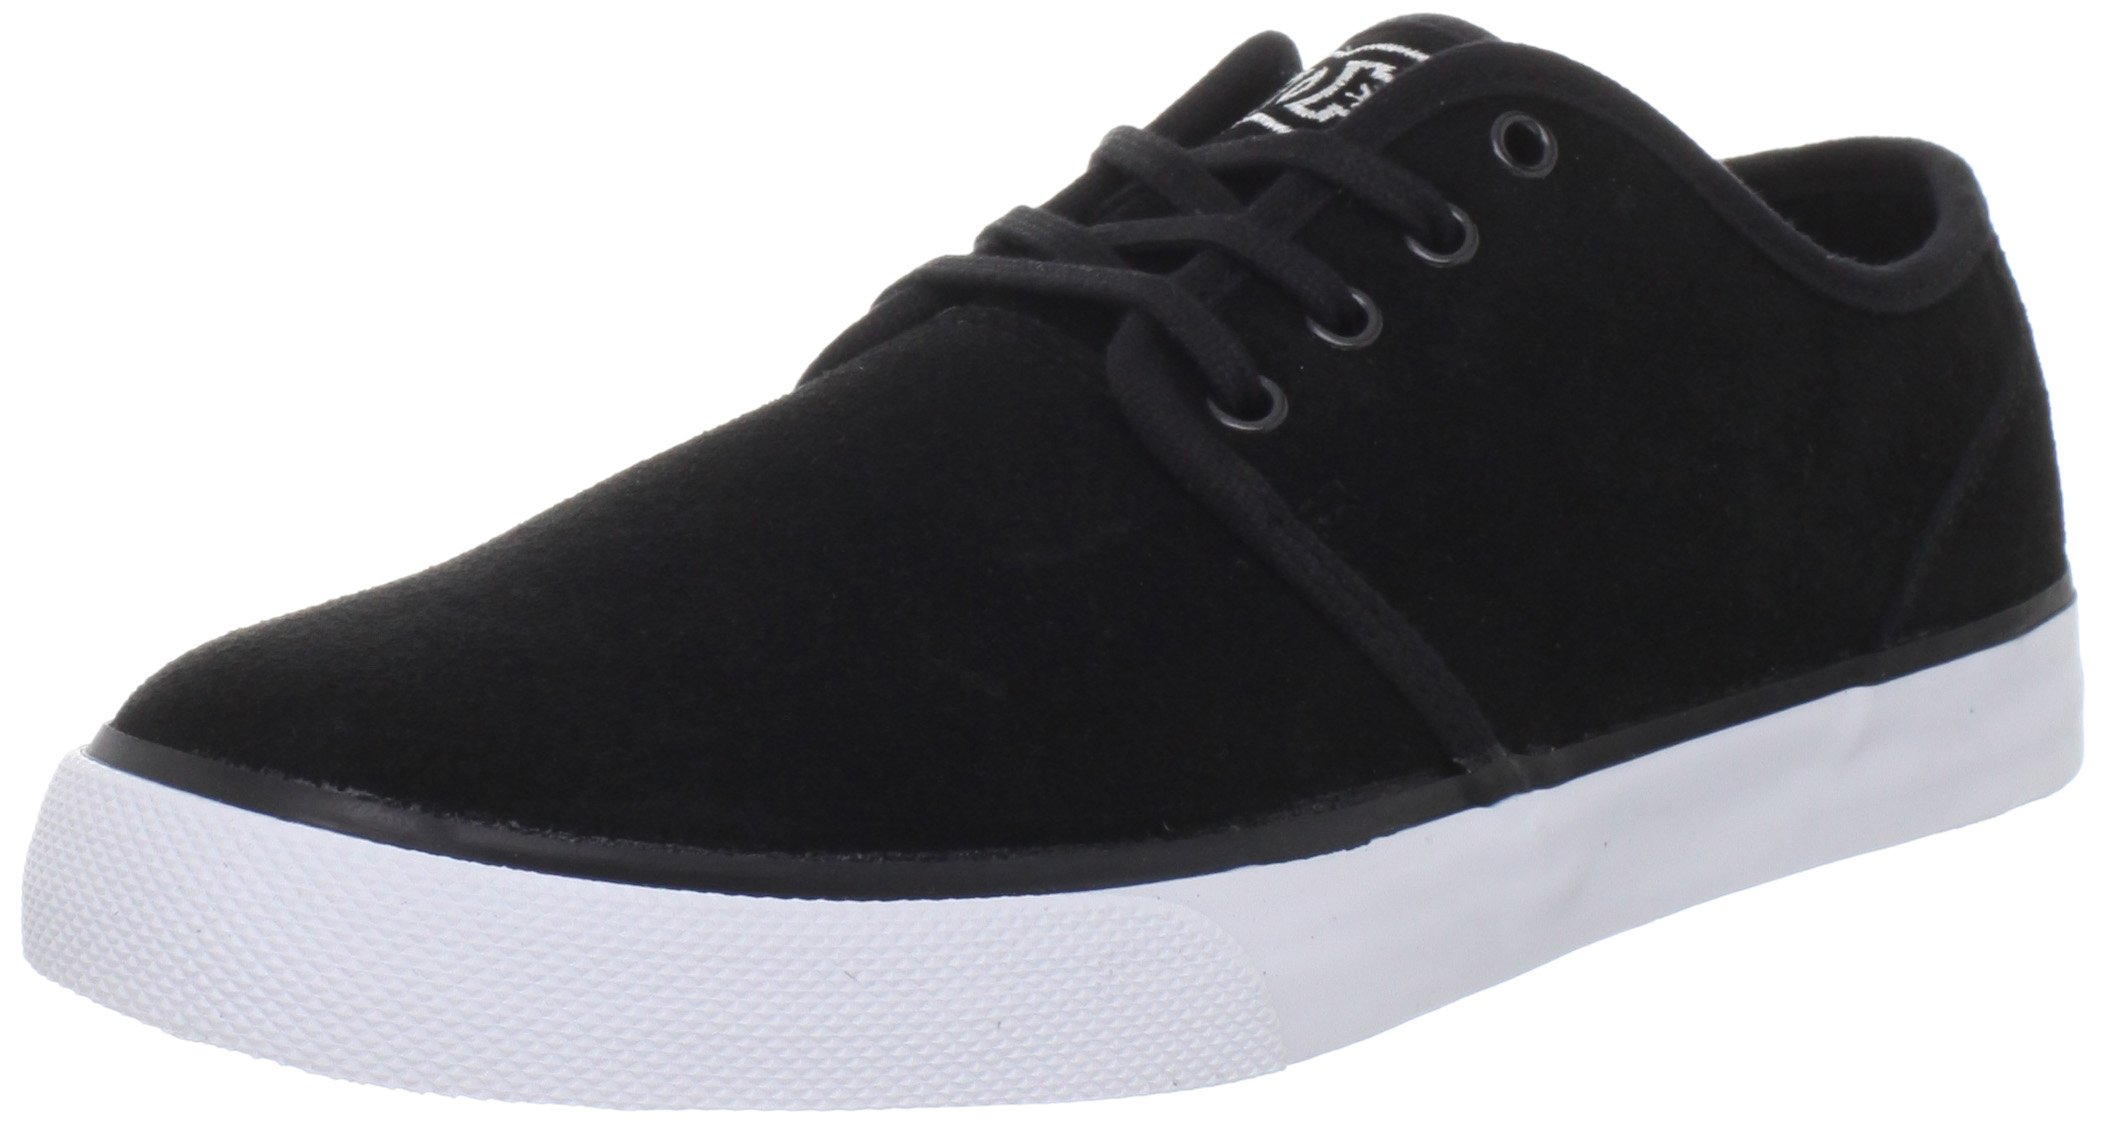 DC Men's Studio Skateboarding Shoes Economical, stylish, and eye-catching shoes